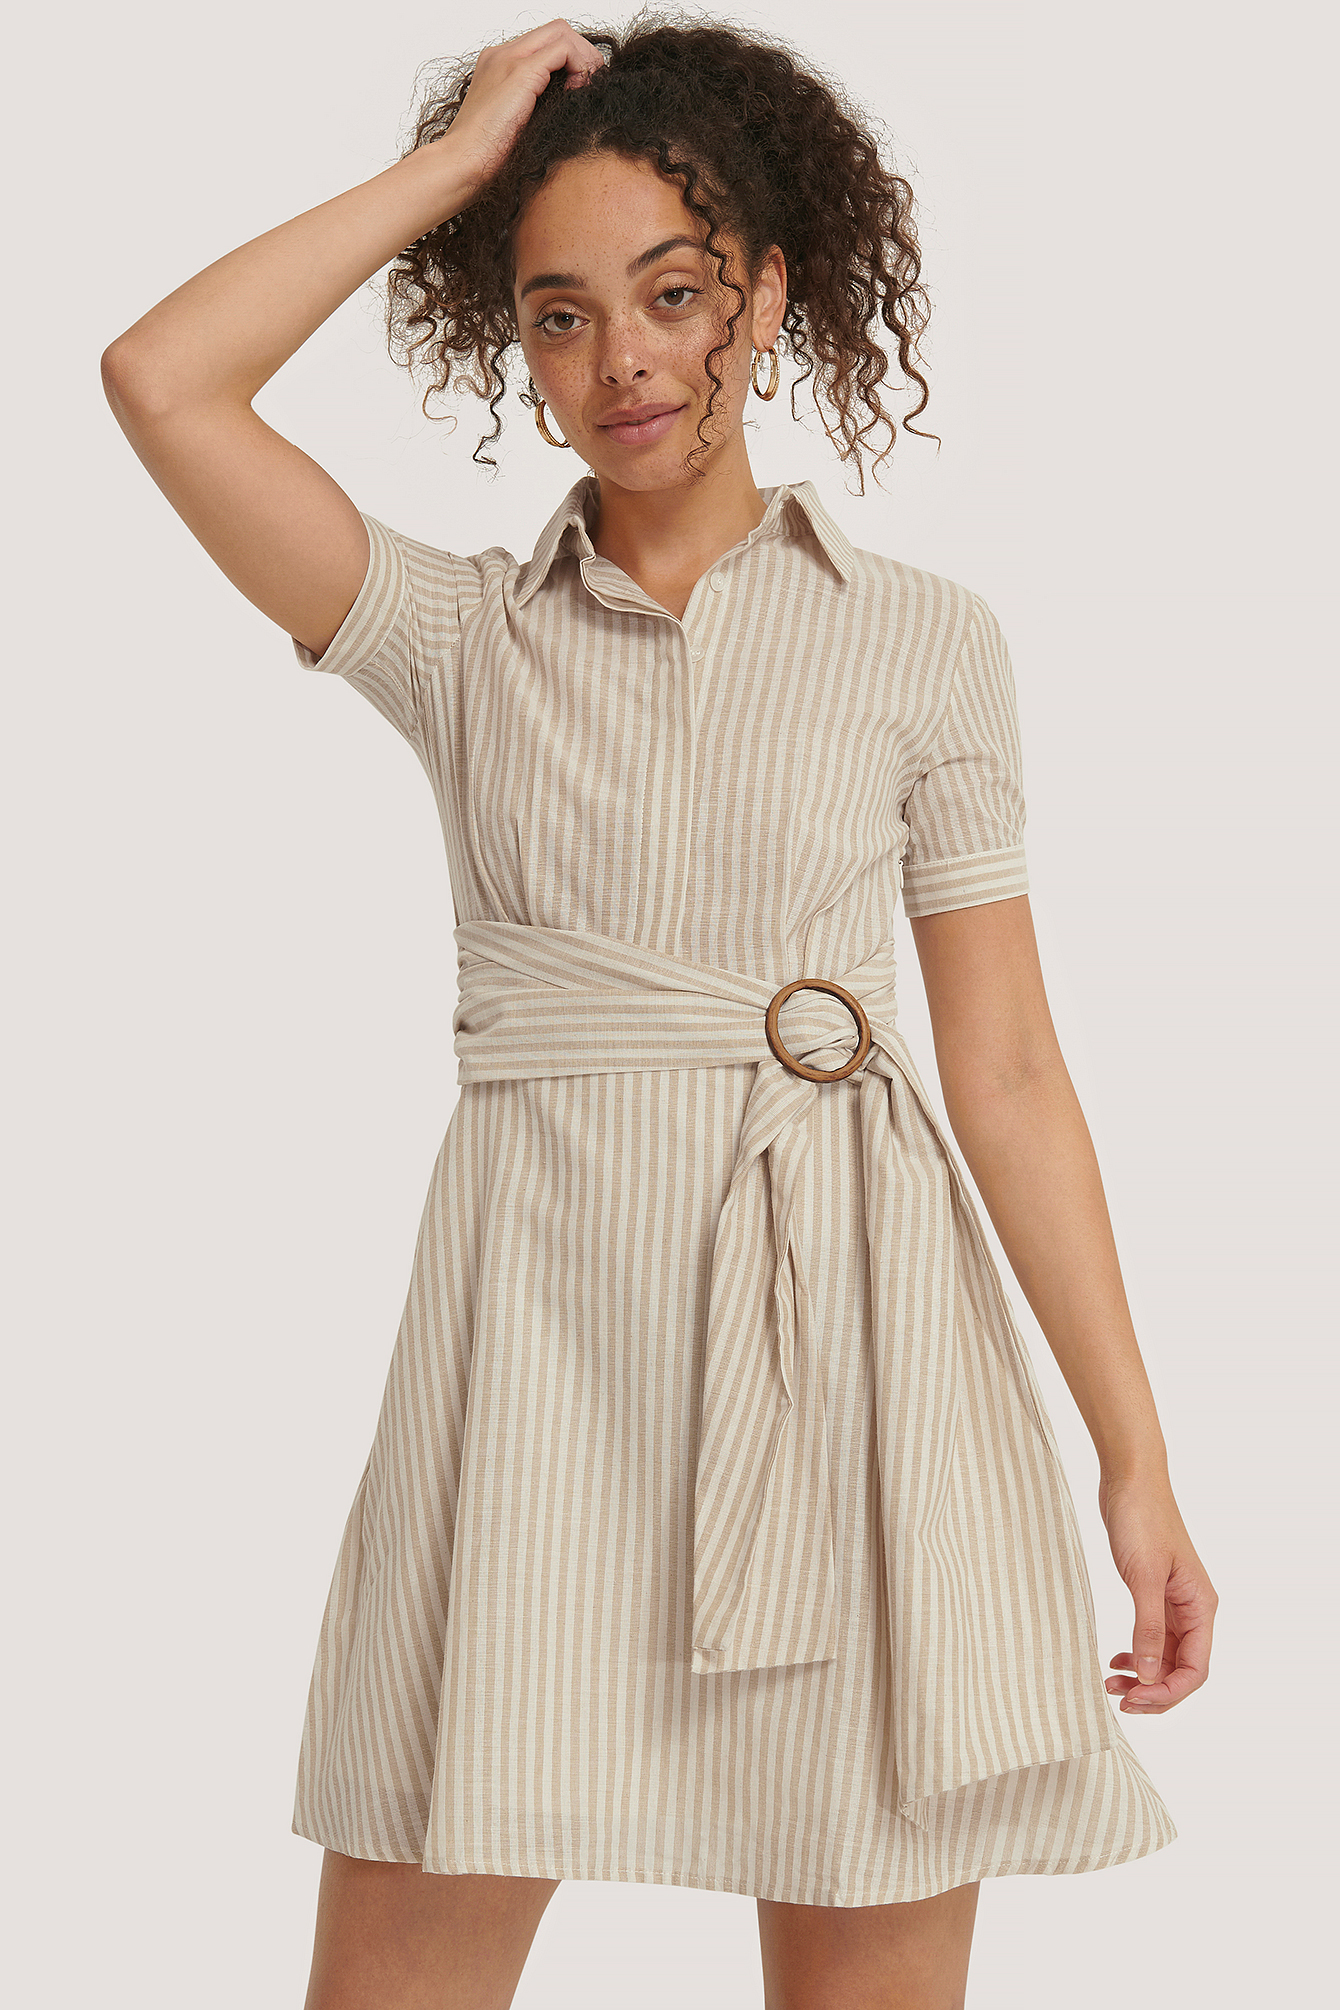 Cream Belt Detailed Mini Dress